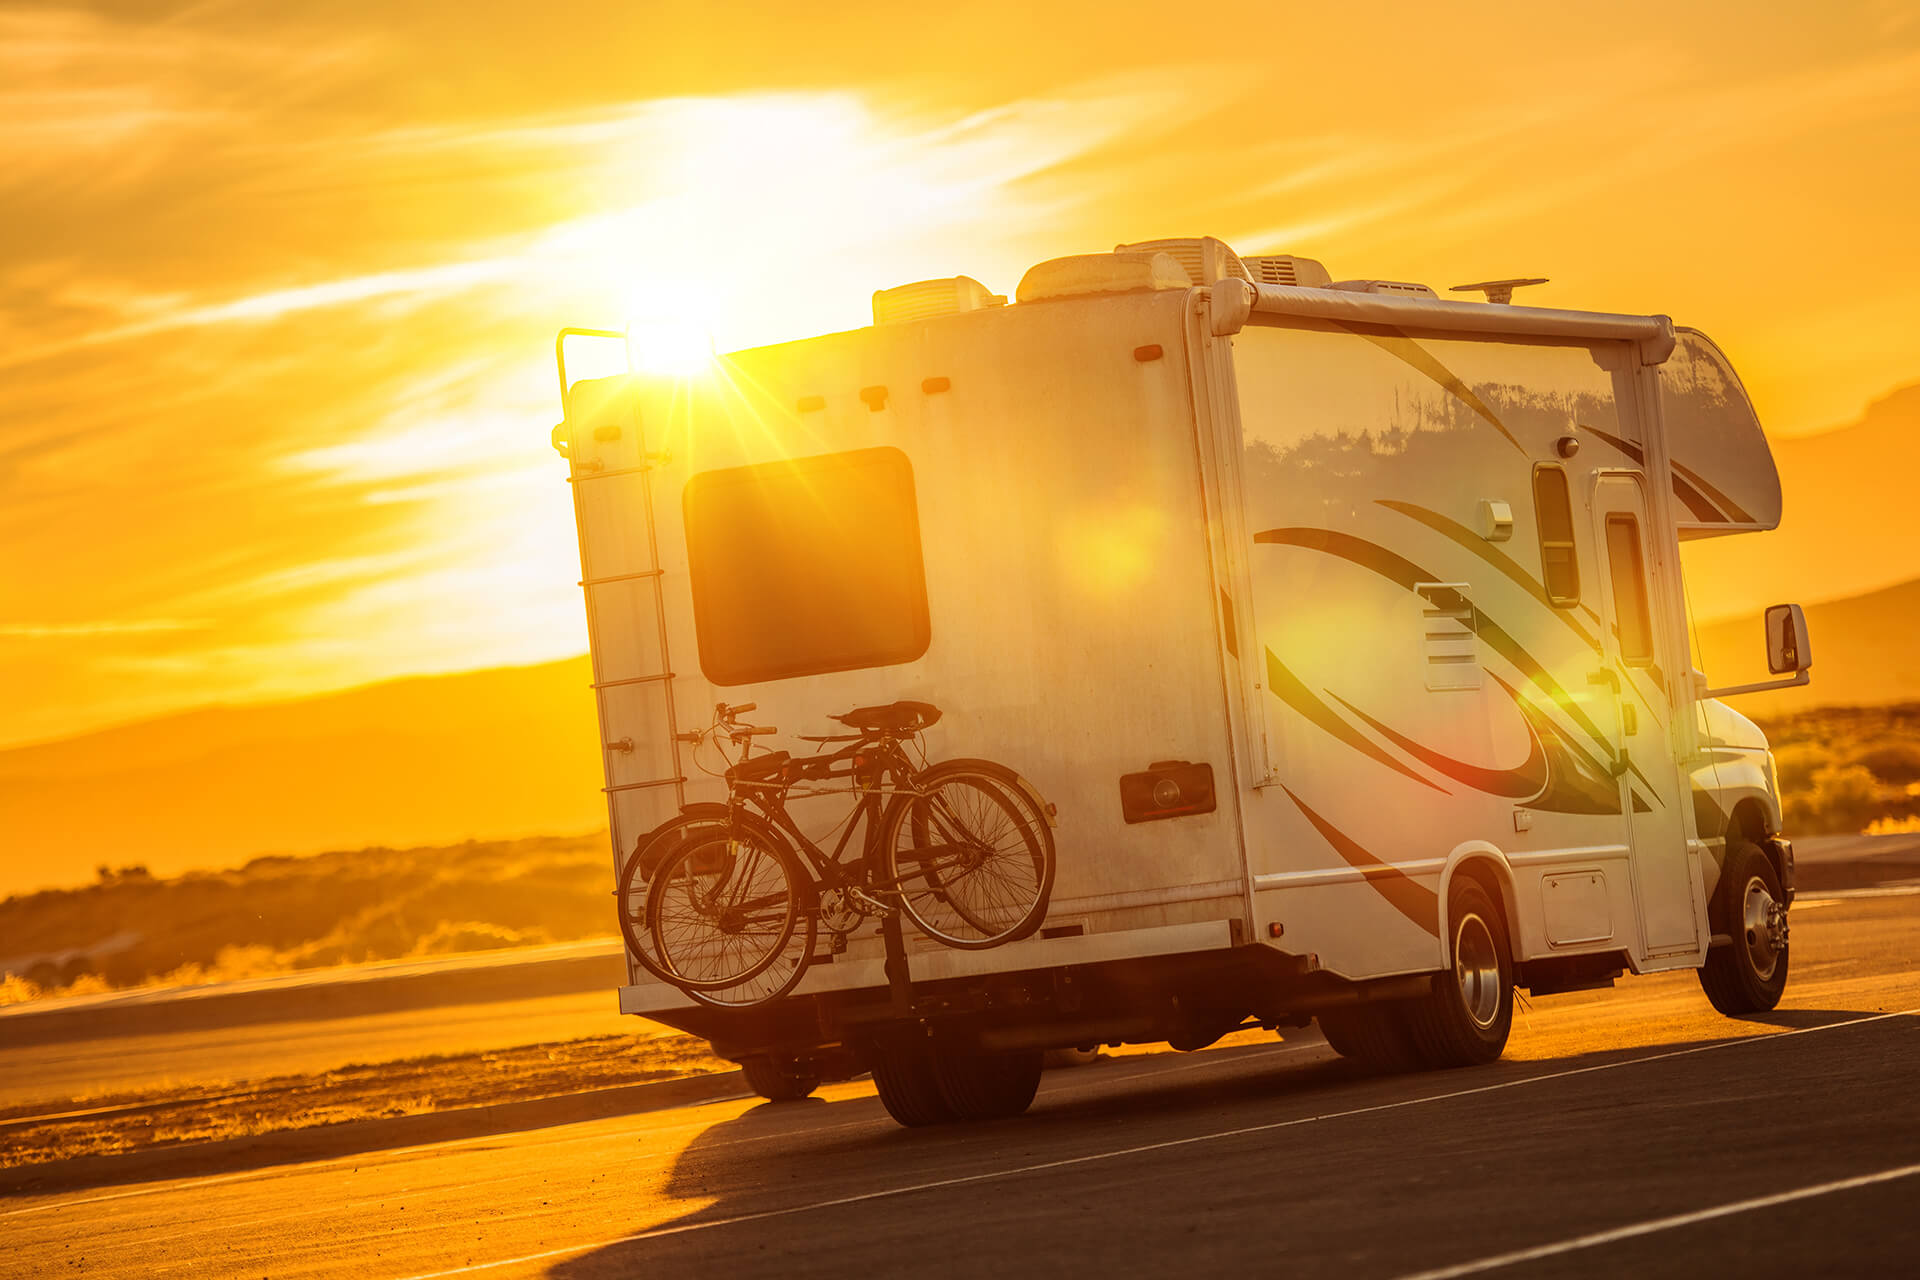 Picture of an RV driving on the highway with the sun behind it. Represents RV insurance